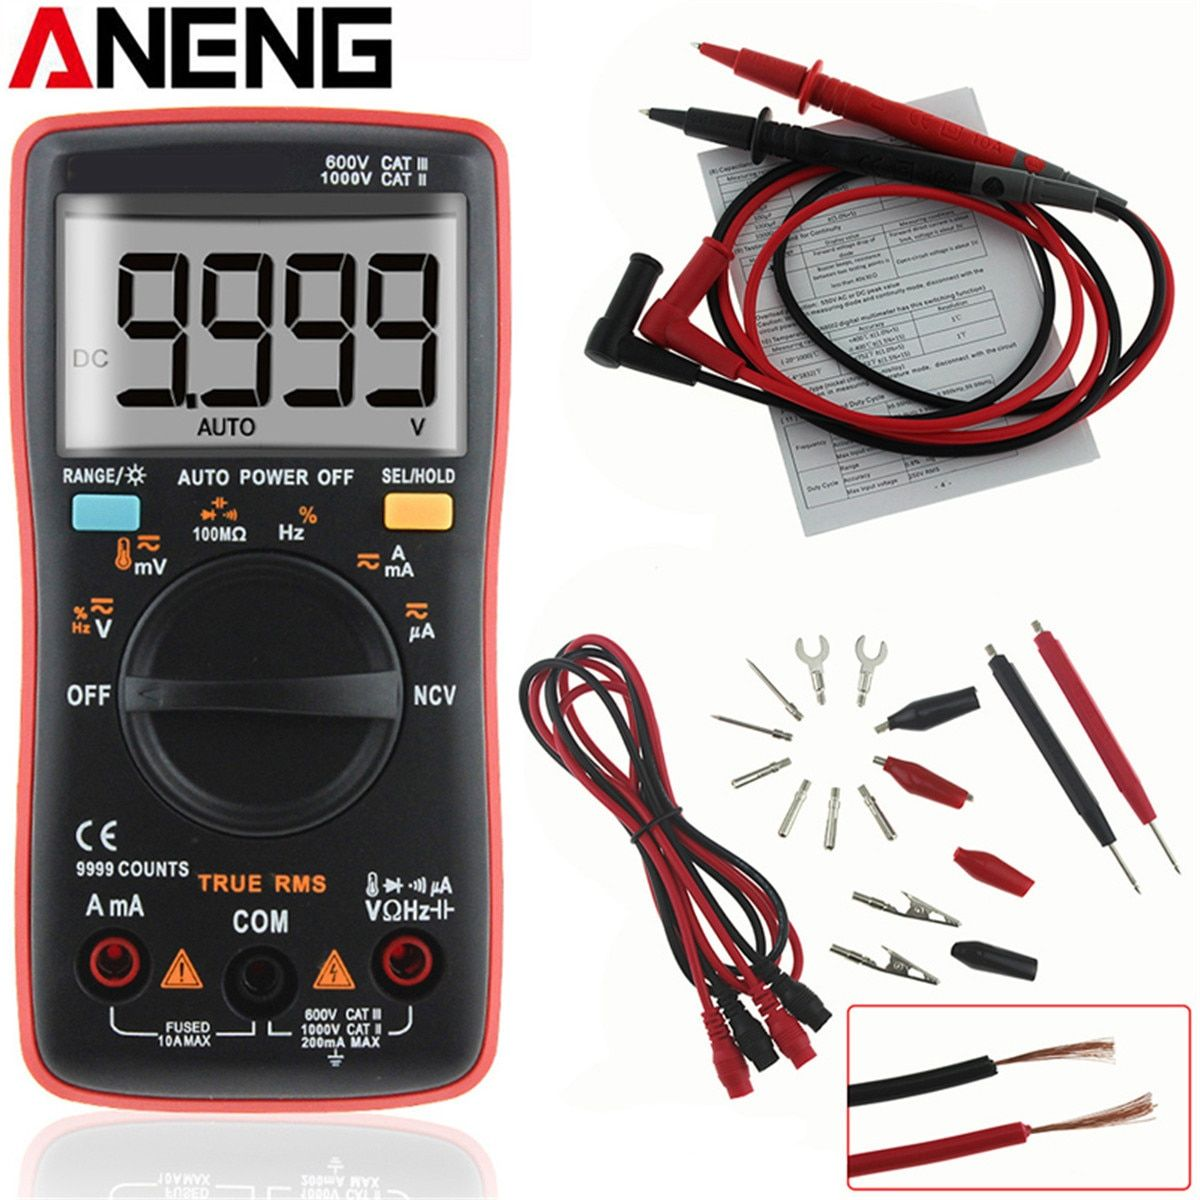 ANENG AN8009 Auto Range Digital Multimeter 9999 Counts Backlight AC/DC Ammeter Voltmeter Ohm Transistor Tester Multi Meter